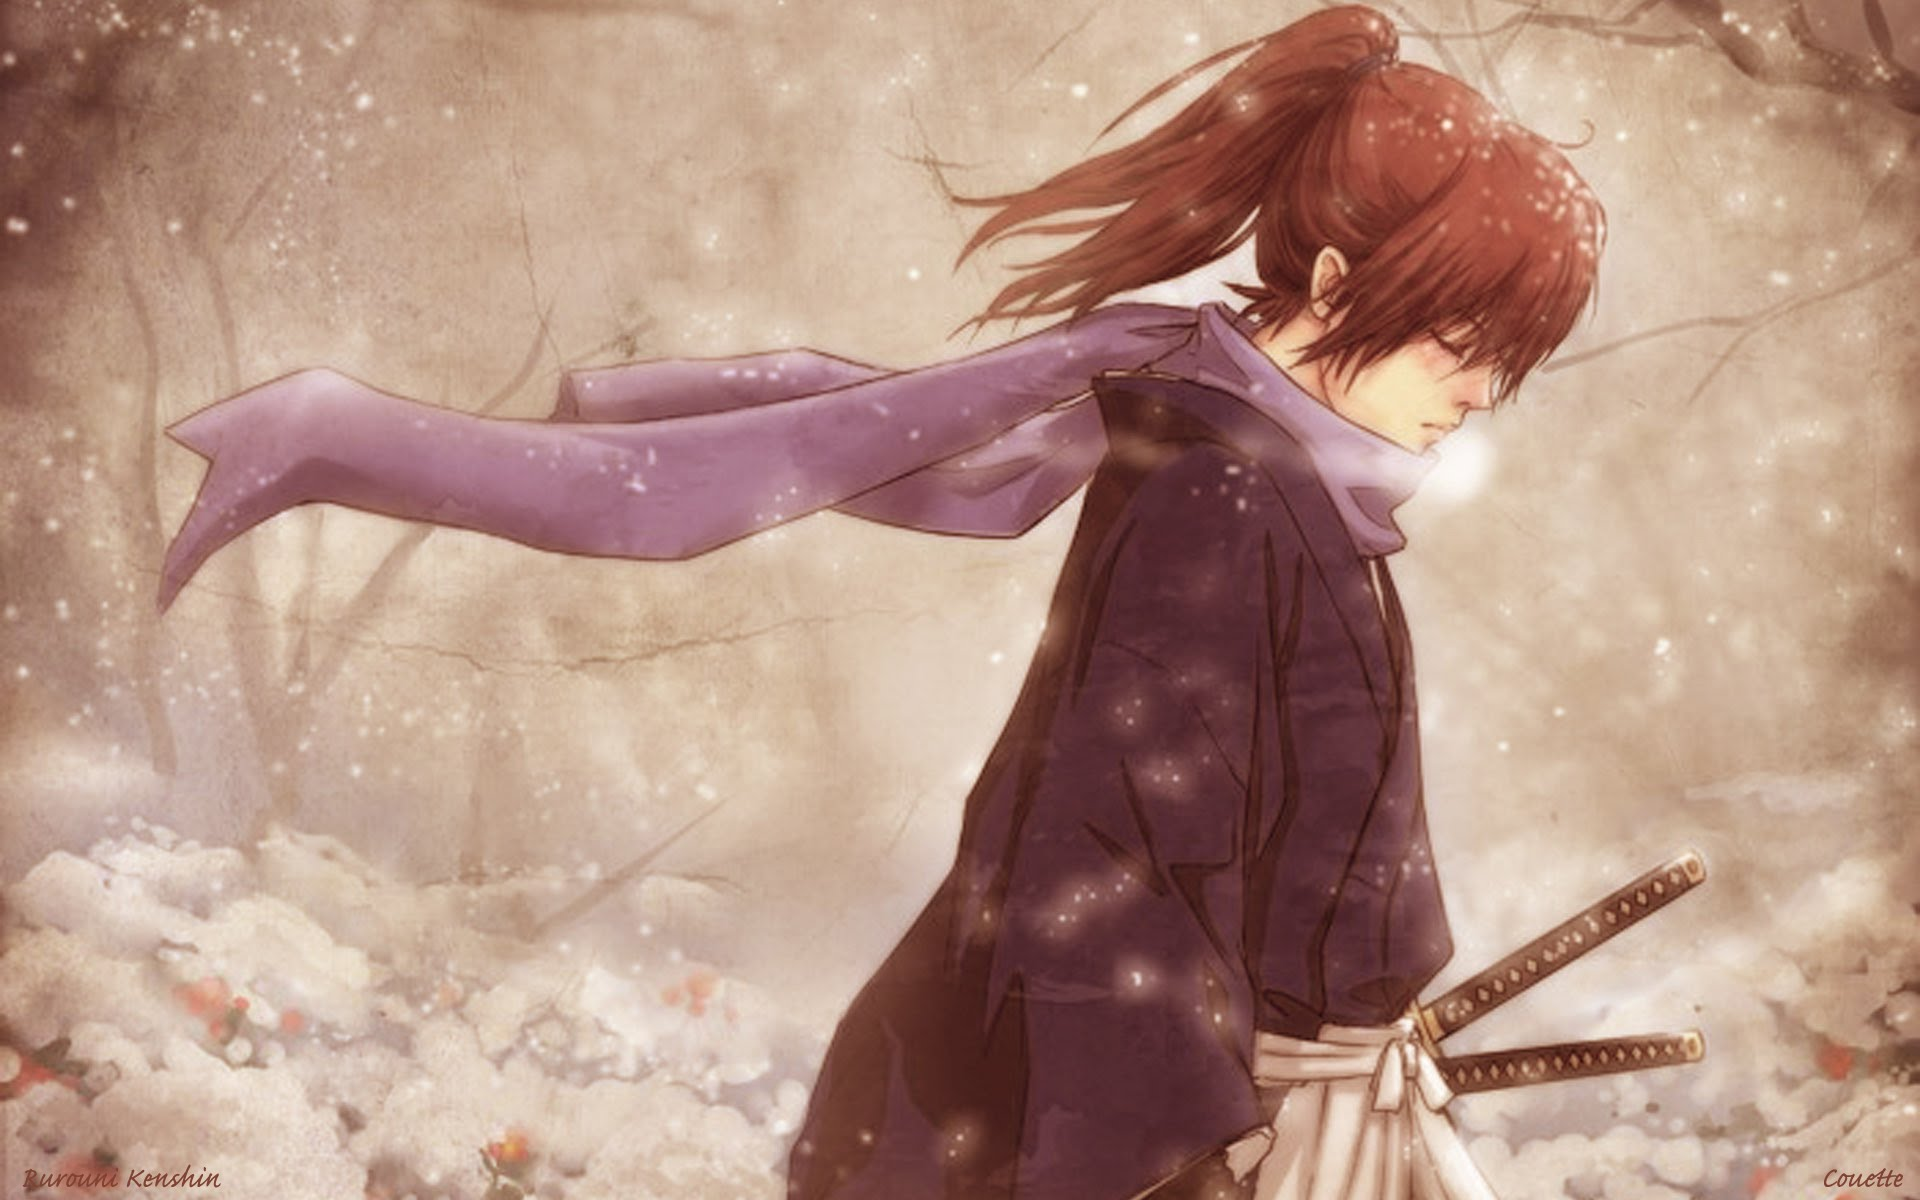 Review | Rurouni Kenshin: Trust and Betrayal